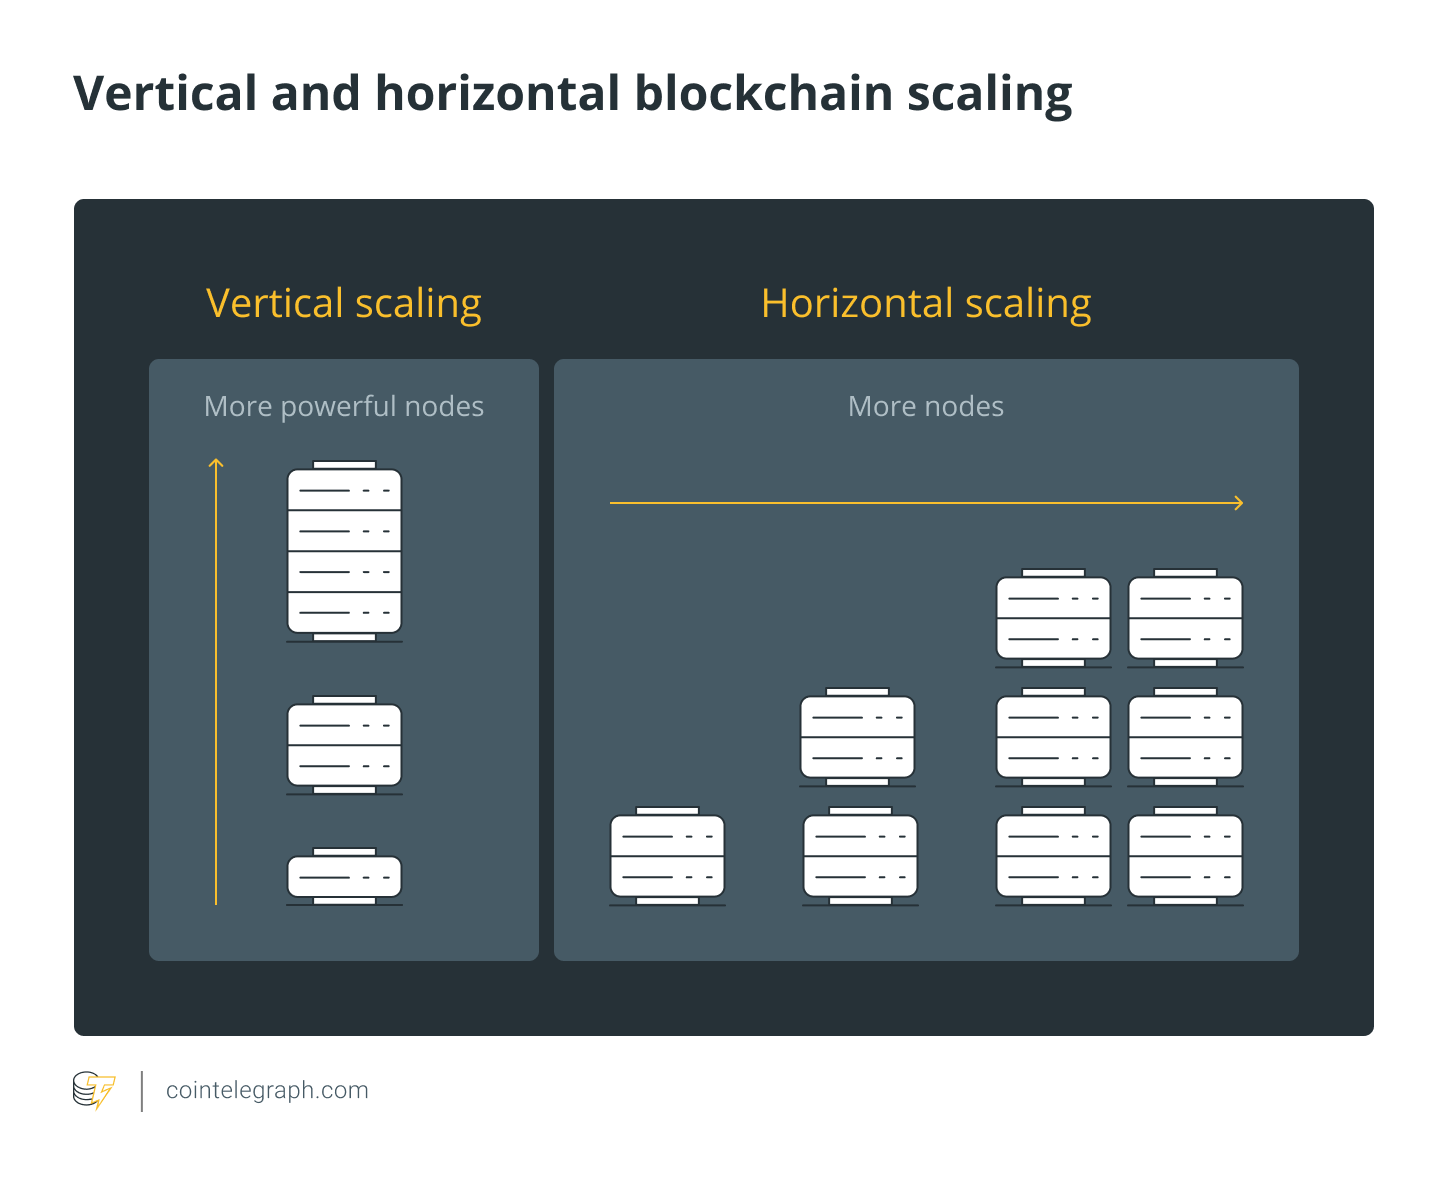 Vertical and horizontal blockchain scaling